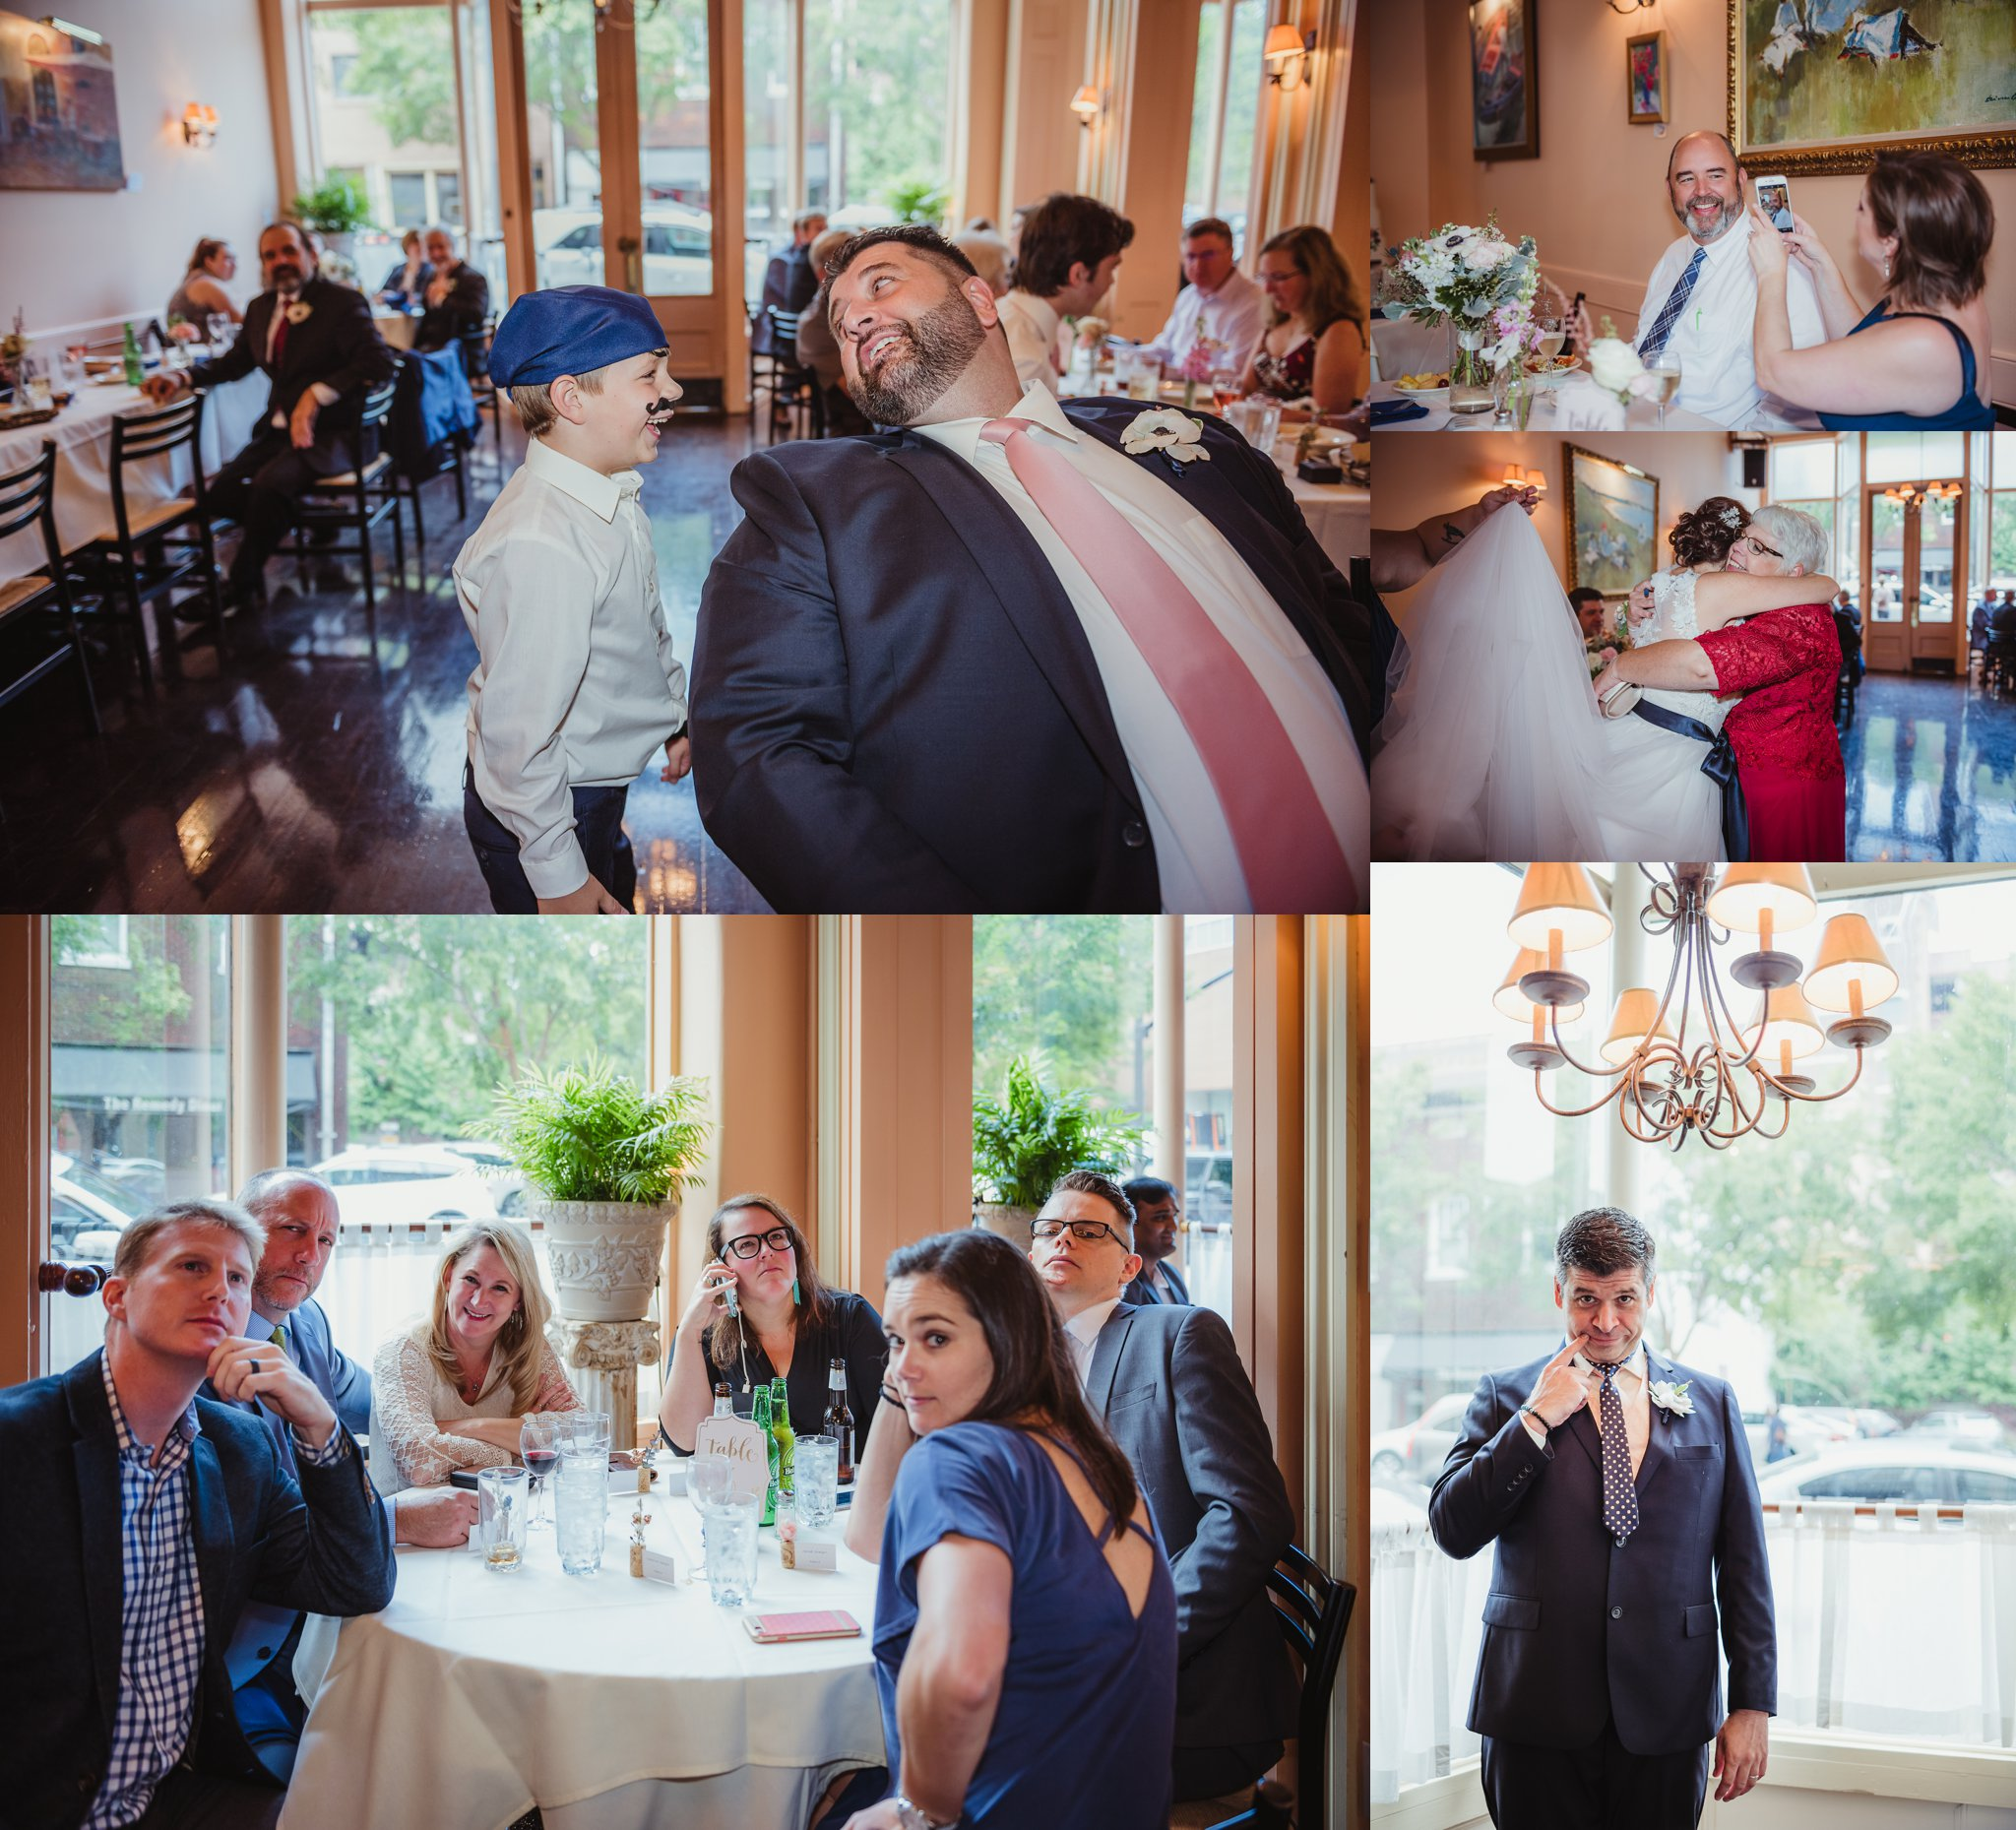 Guests were having a lot of fun during the wedding reception at Caffe Luna, pictures taken by Rose Trail Images in Raleigh, NC.